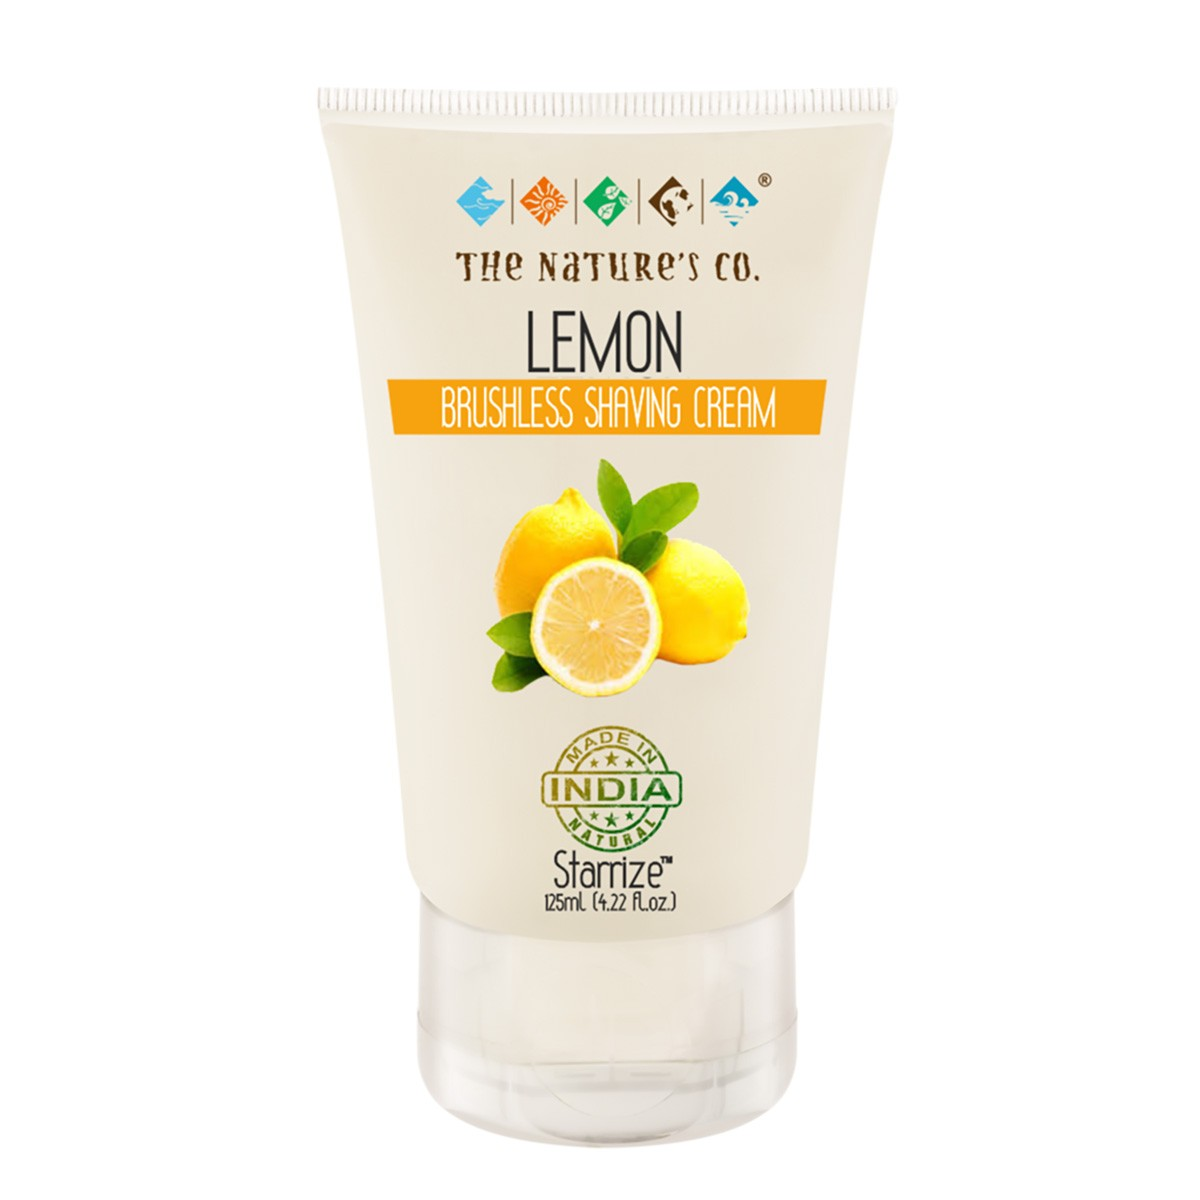 Lemon Brushless Shaving Cream